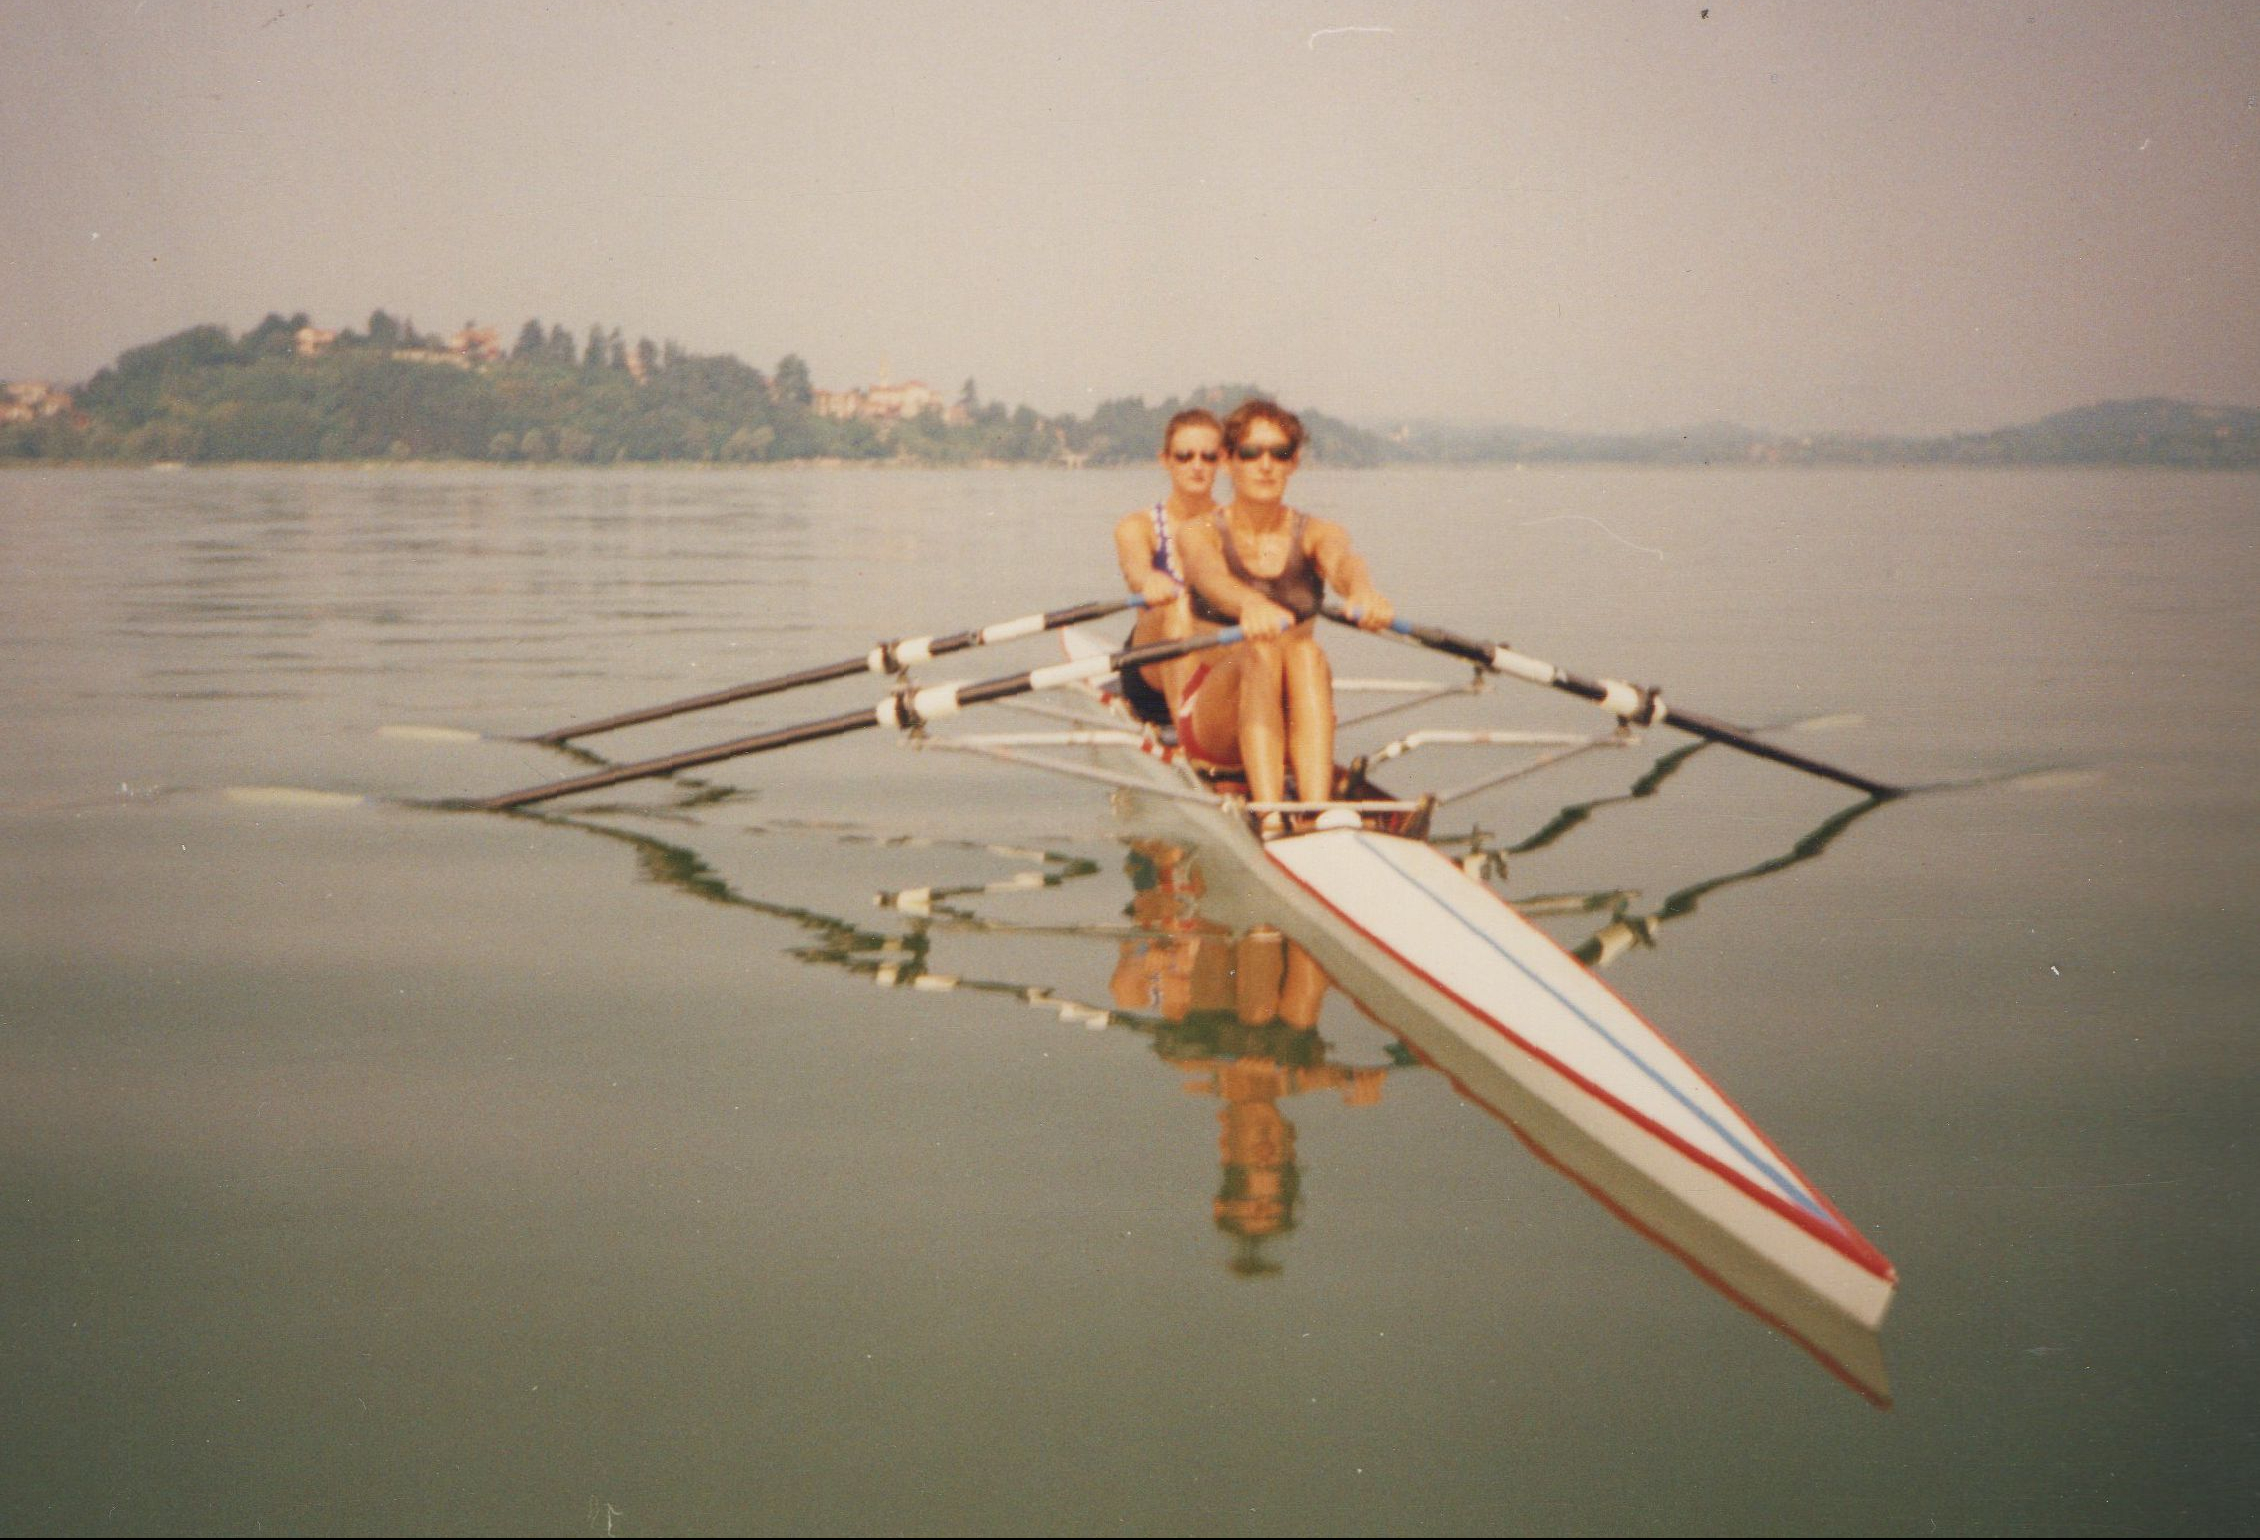 double scull on mirror-flat water